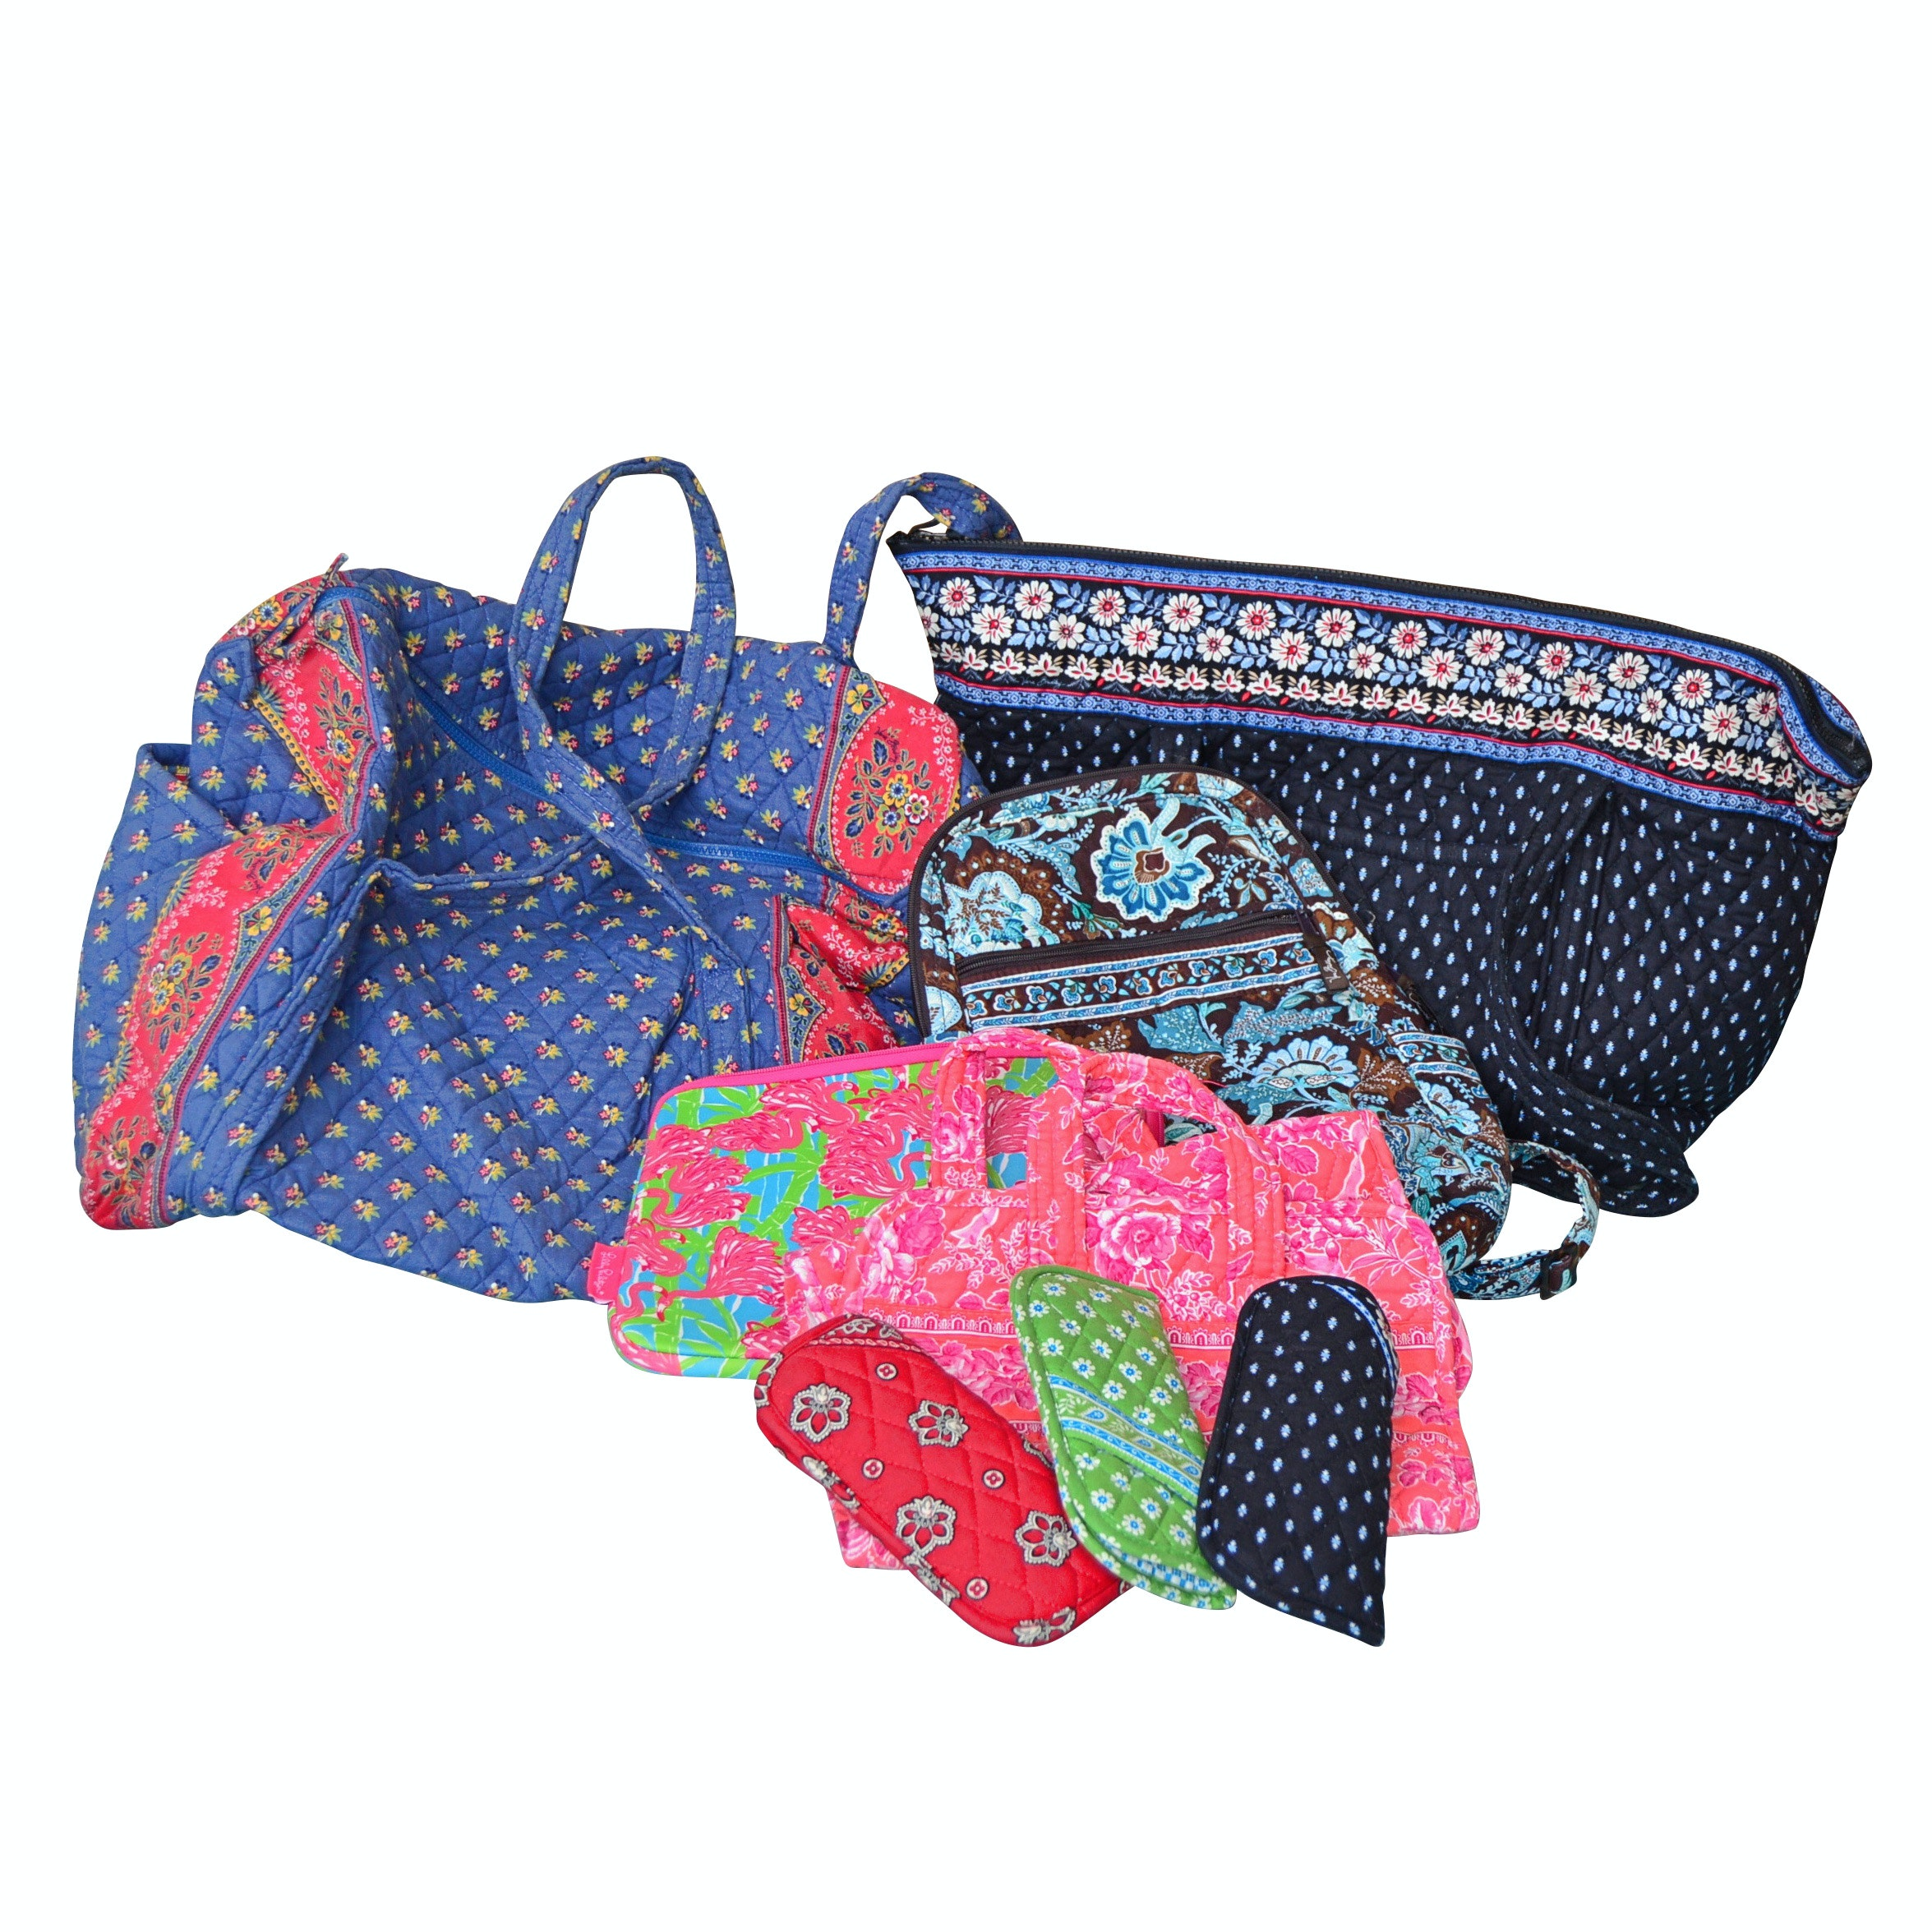 Vera Bradley Floral Cotton Totes, Backpack, Makeup Bags and Eyeglass Cases